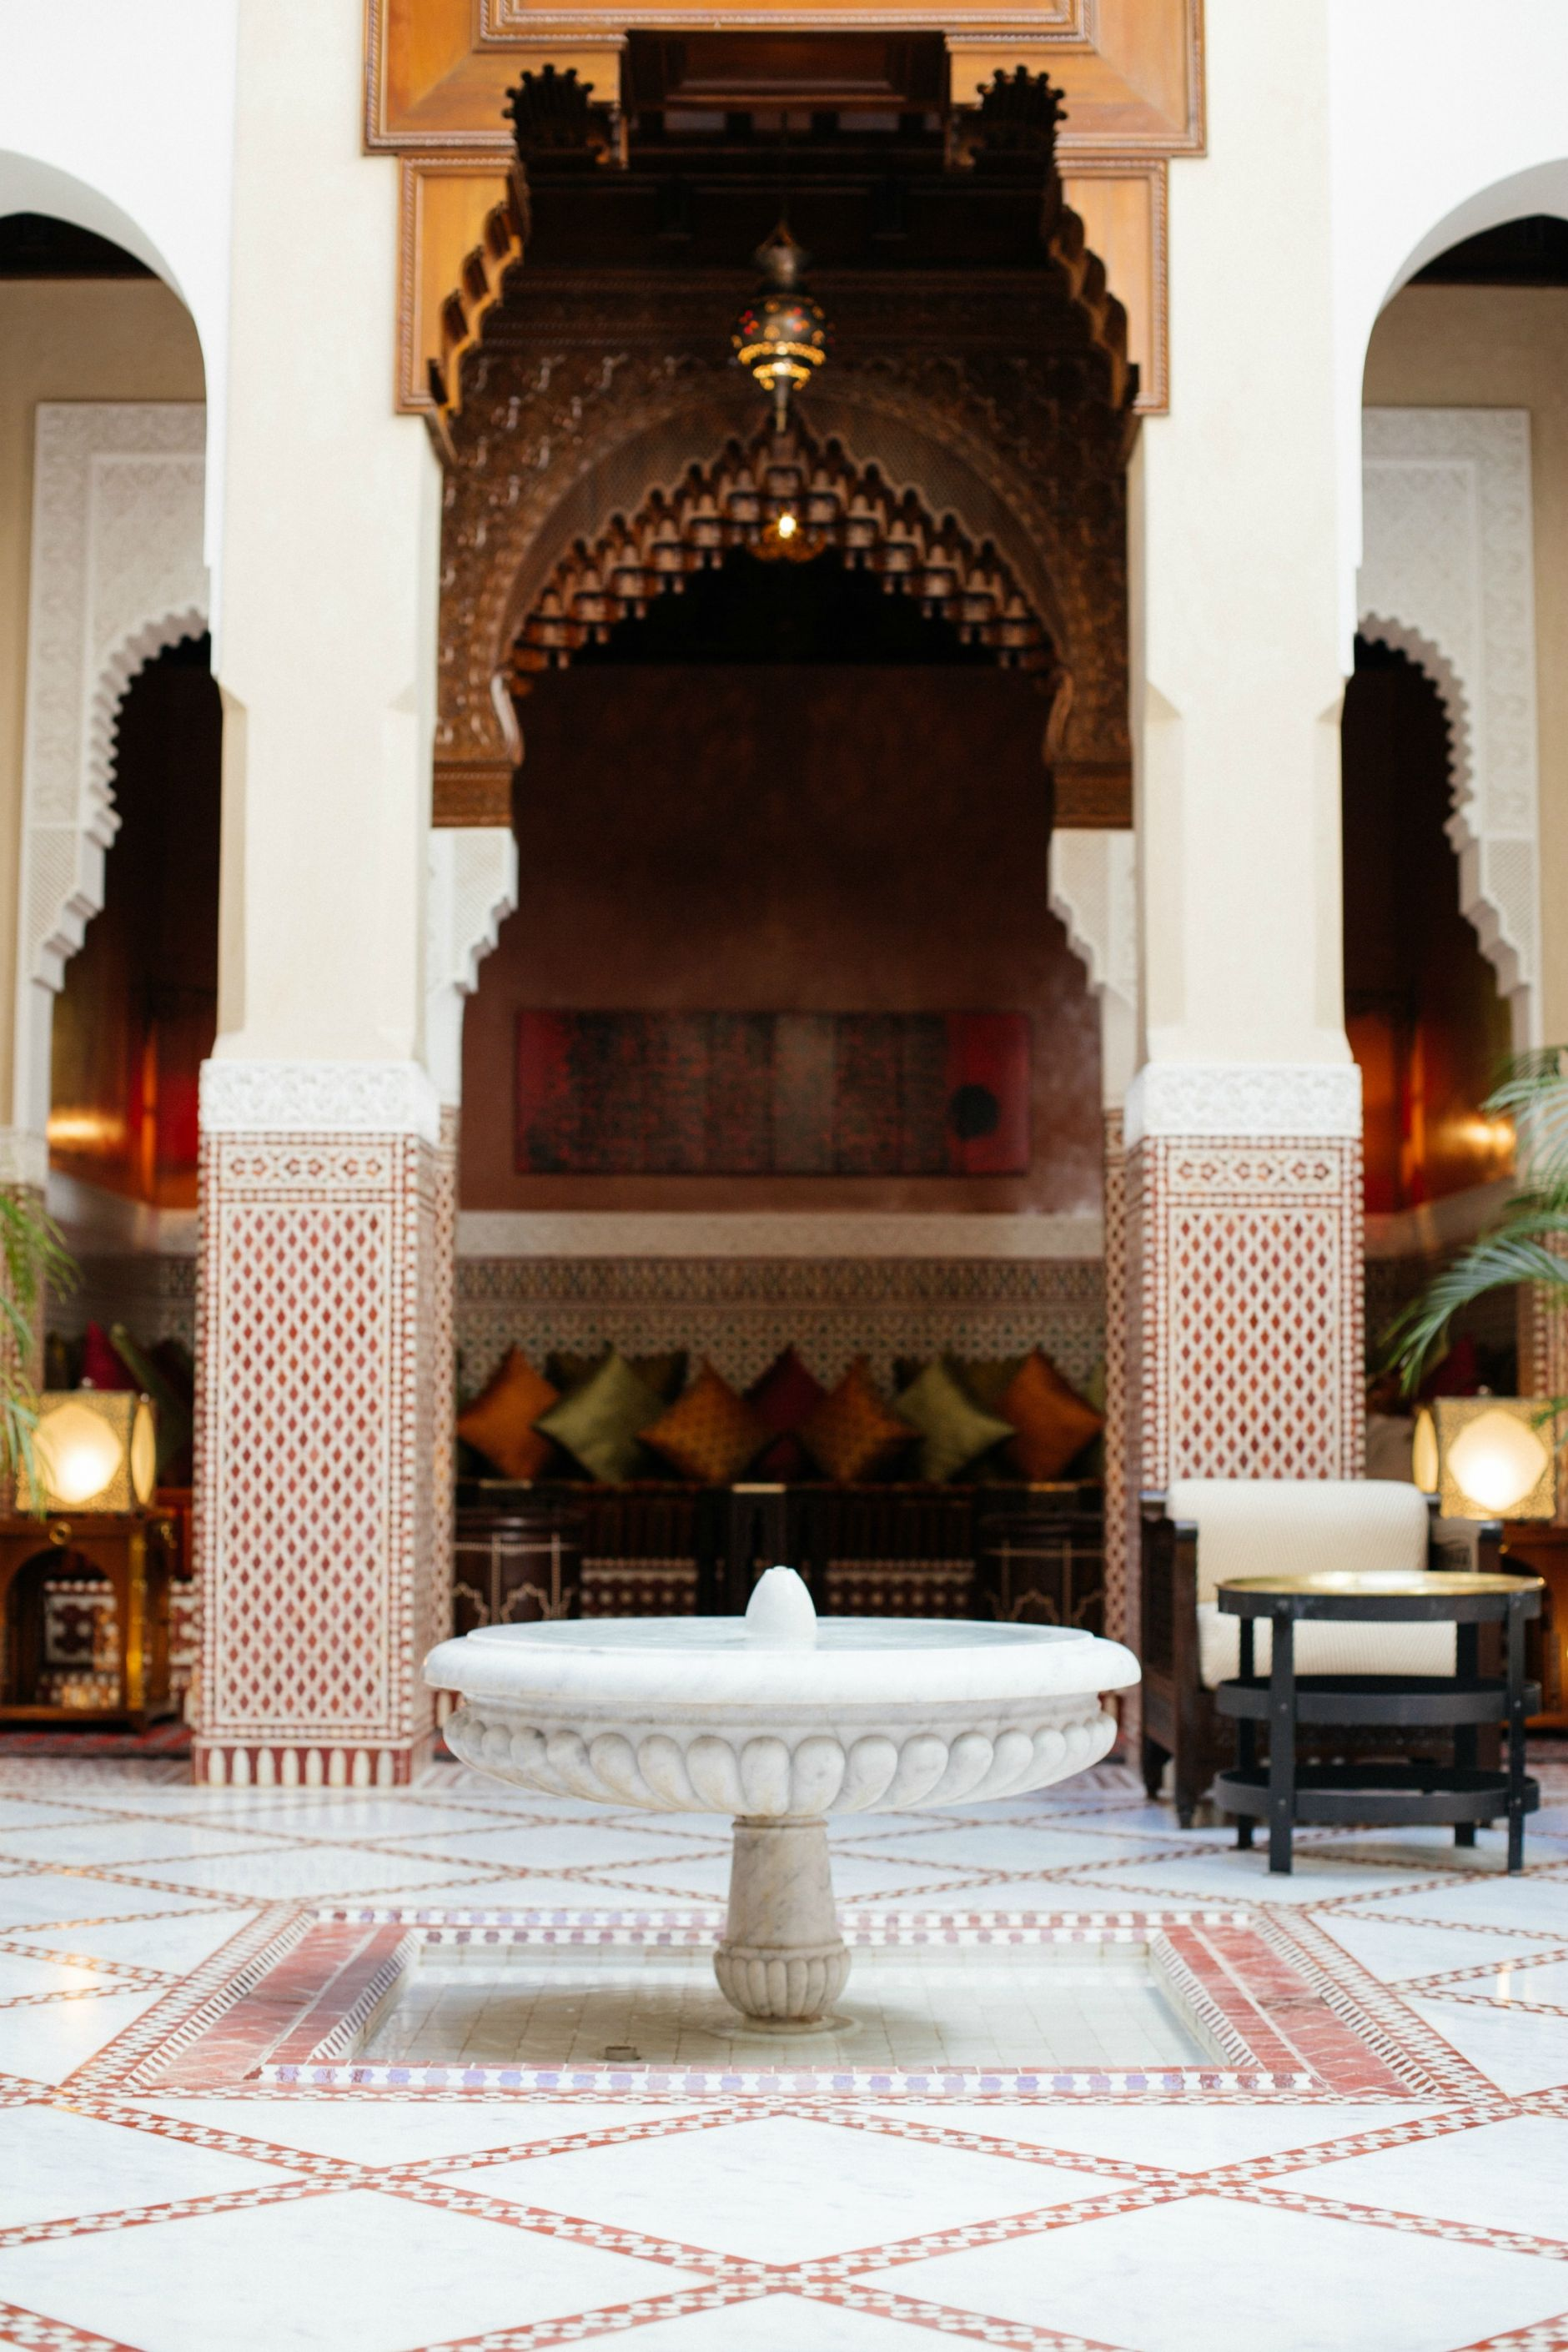 royal-mansour-hotel-luxury-marrakesch-marrakesh-morocco-edisa-shahini-disicouture-blog-31